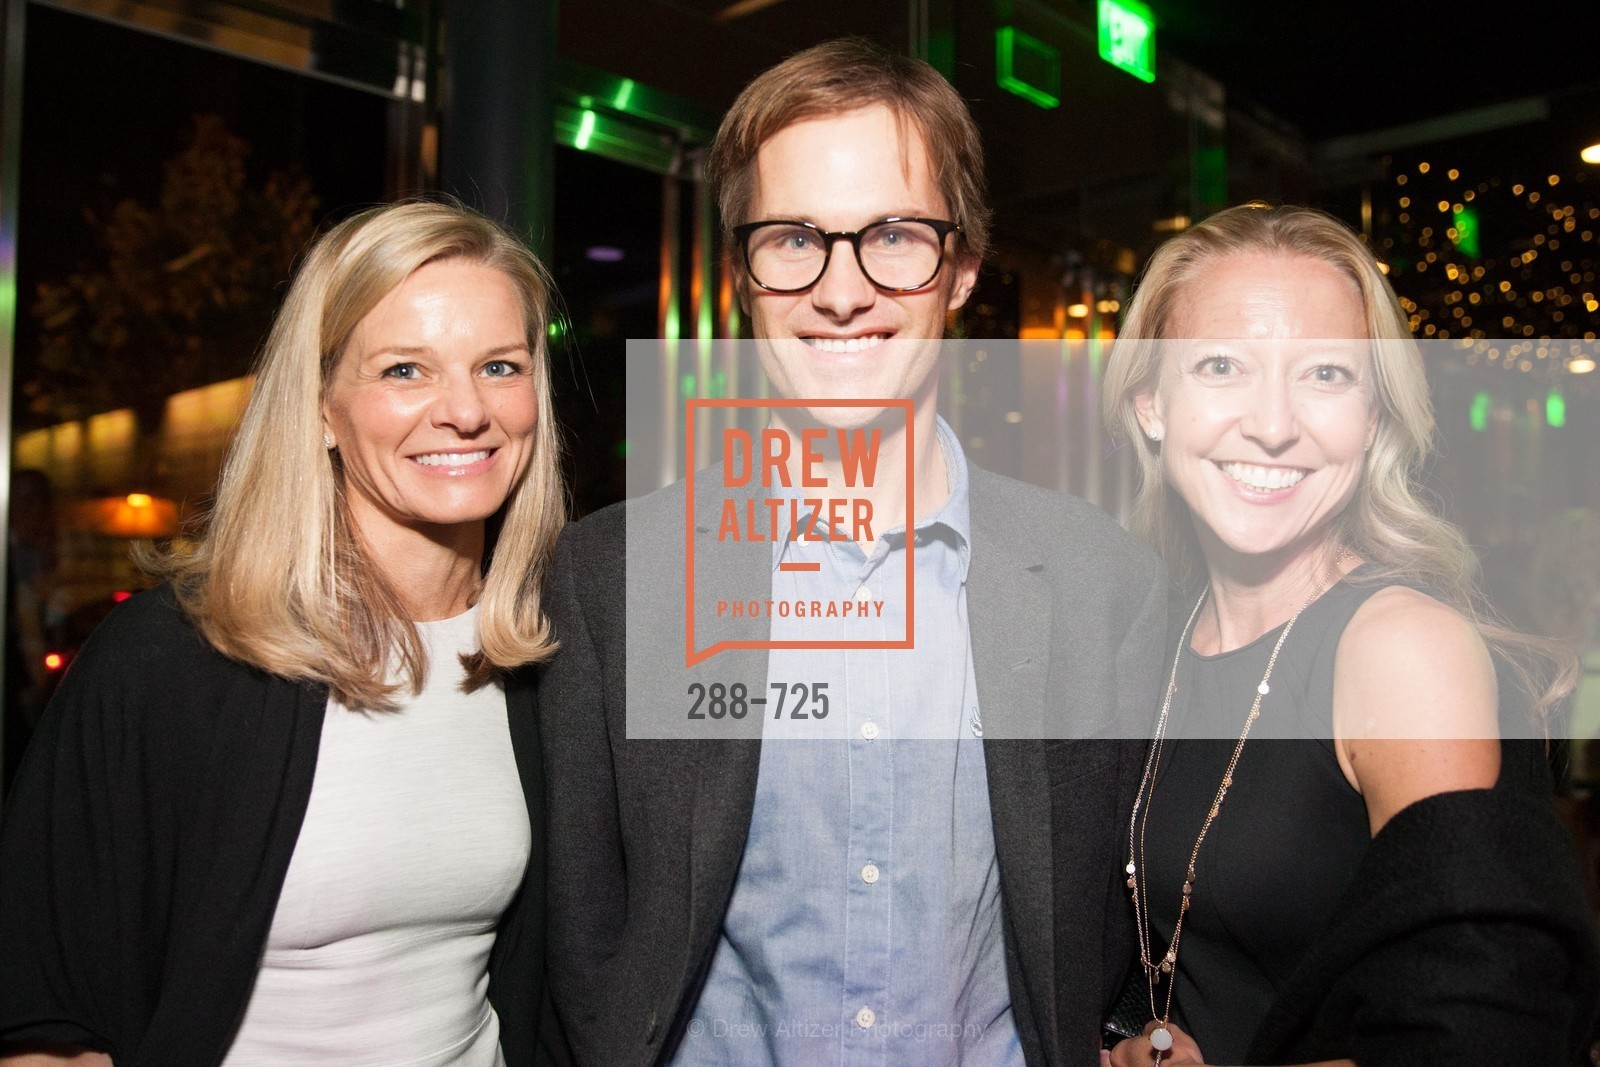 Carey Wintroub, Kevin Hartz, Kimberly Garfinkel, COMMON SENSE Media Awards 2015, US, May 14th, 2015,Drew Altizer, Drew Altizer Photography, full-service agency, private events, San Francisco photographer, photographer california